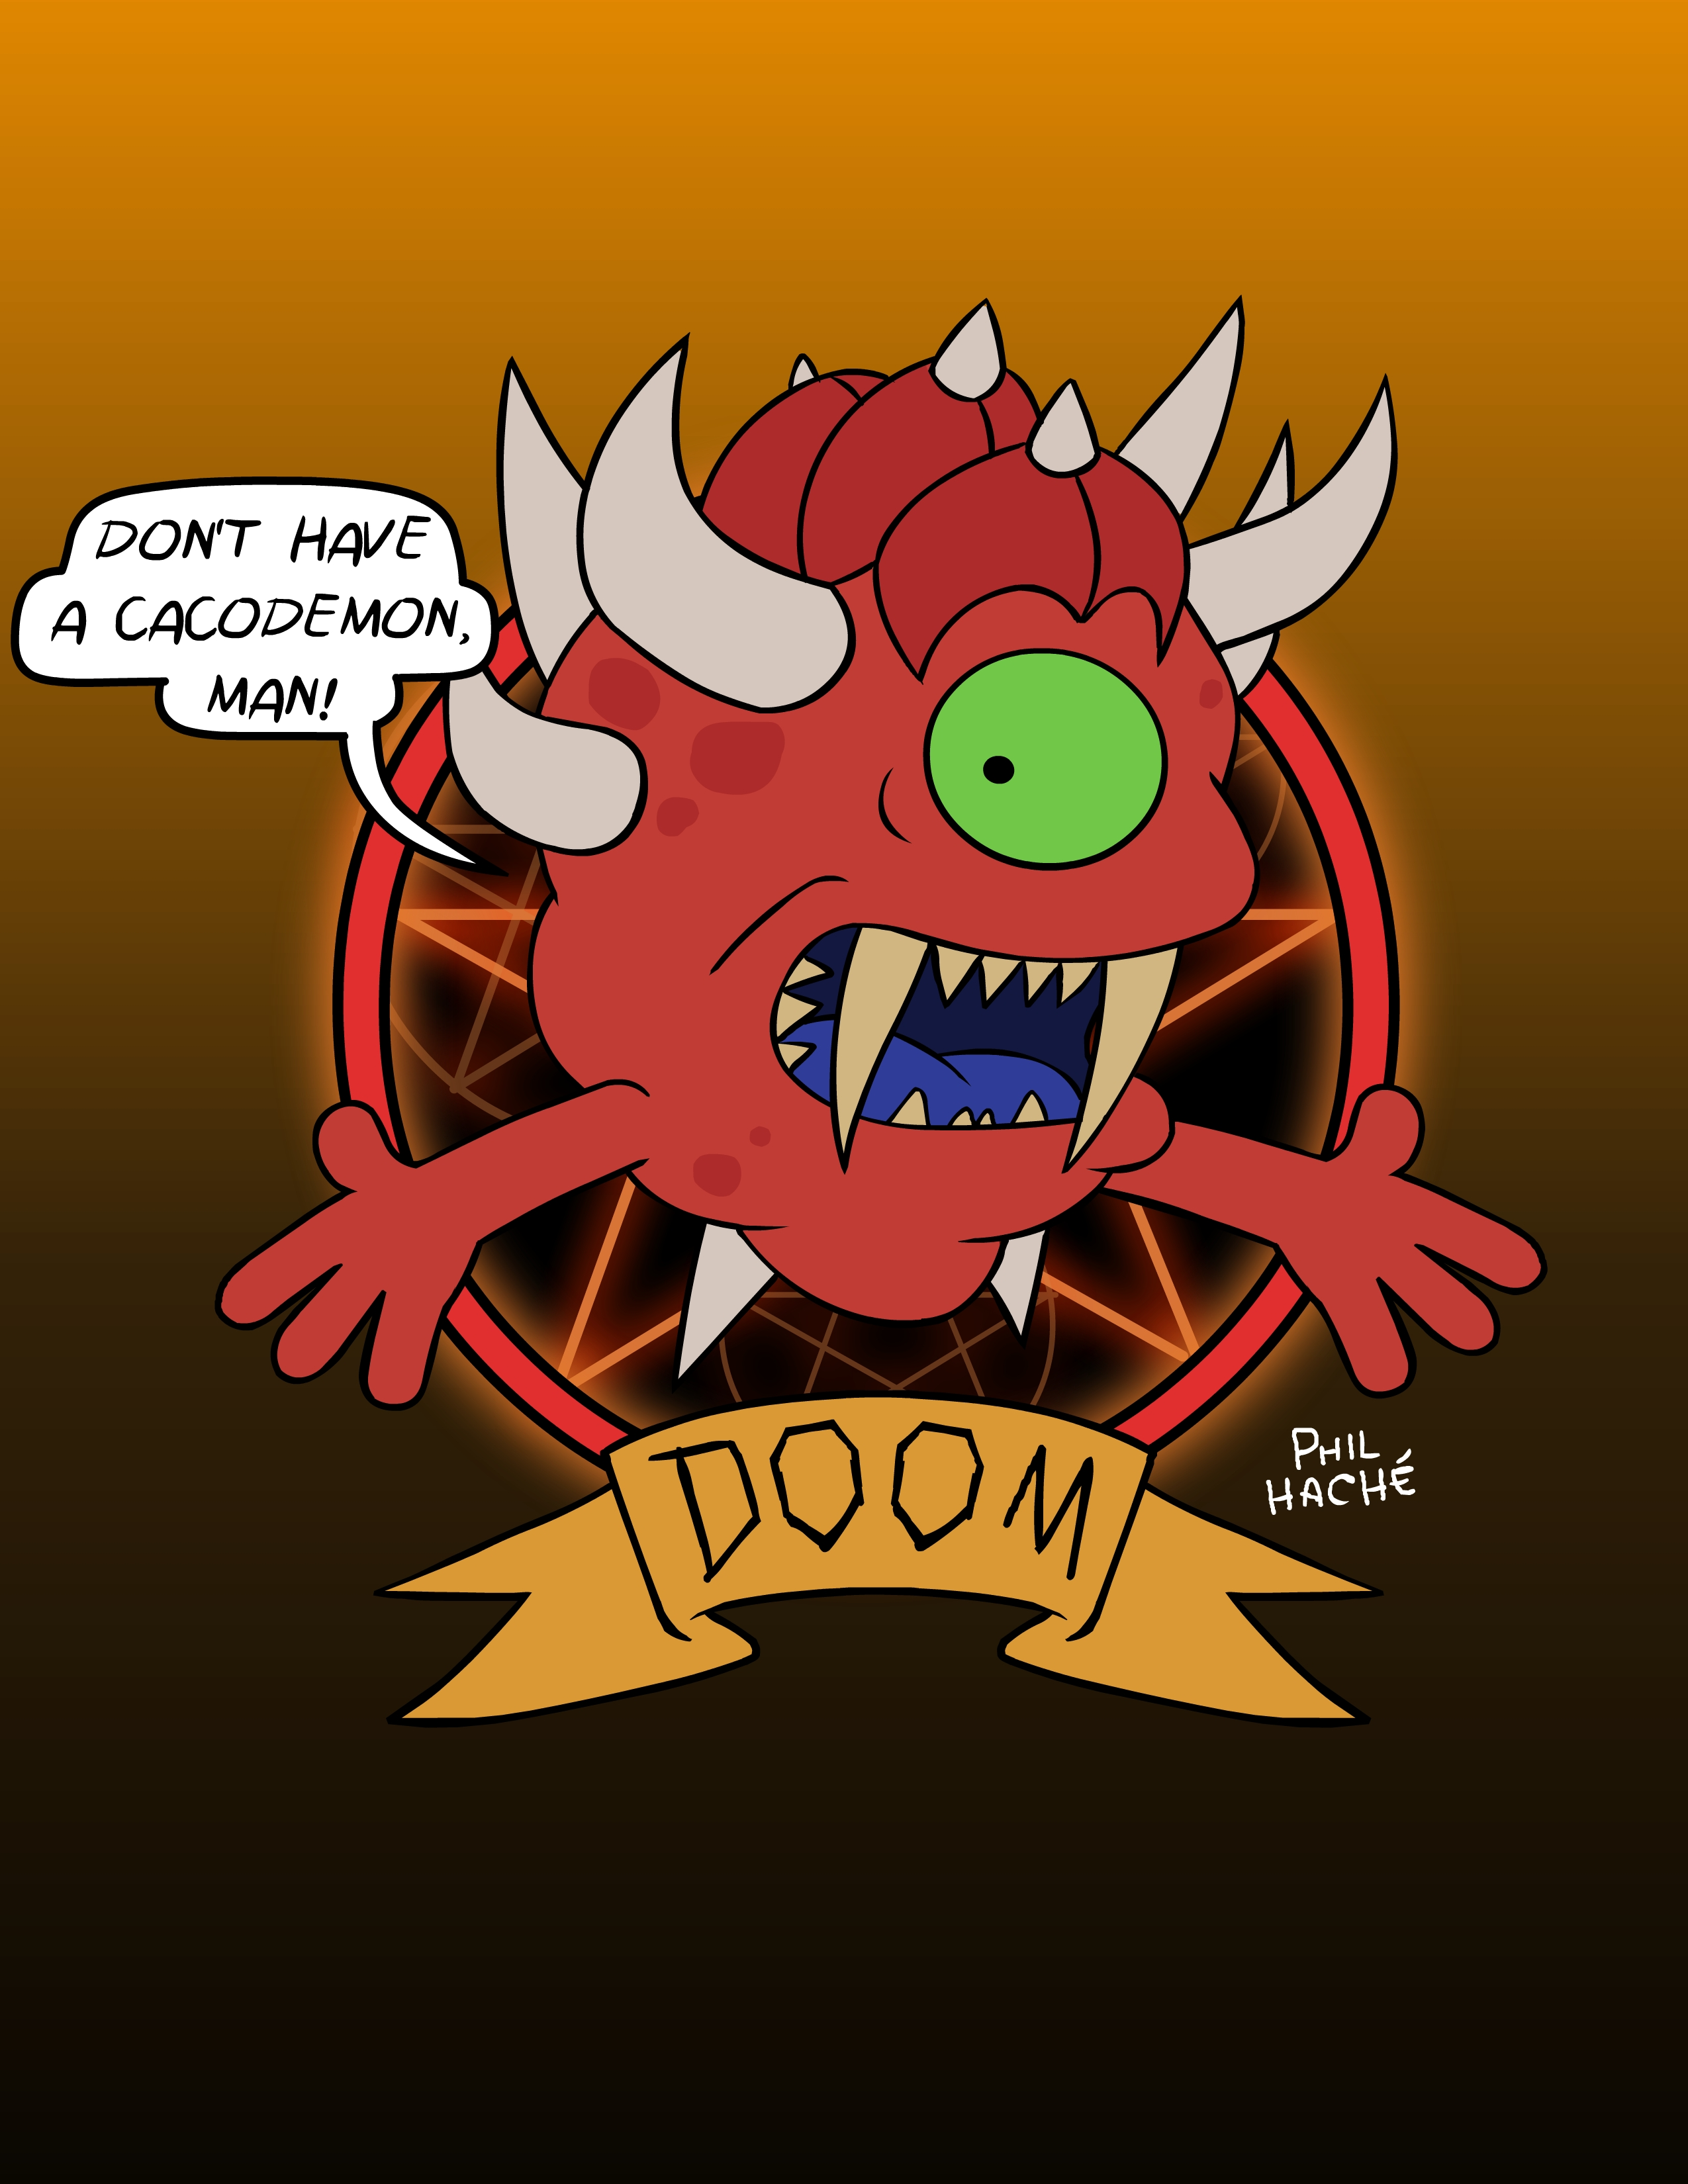 Don't Have a Cacodemon MAN!